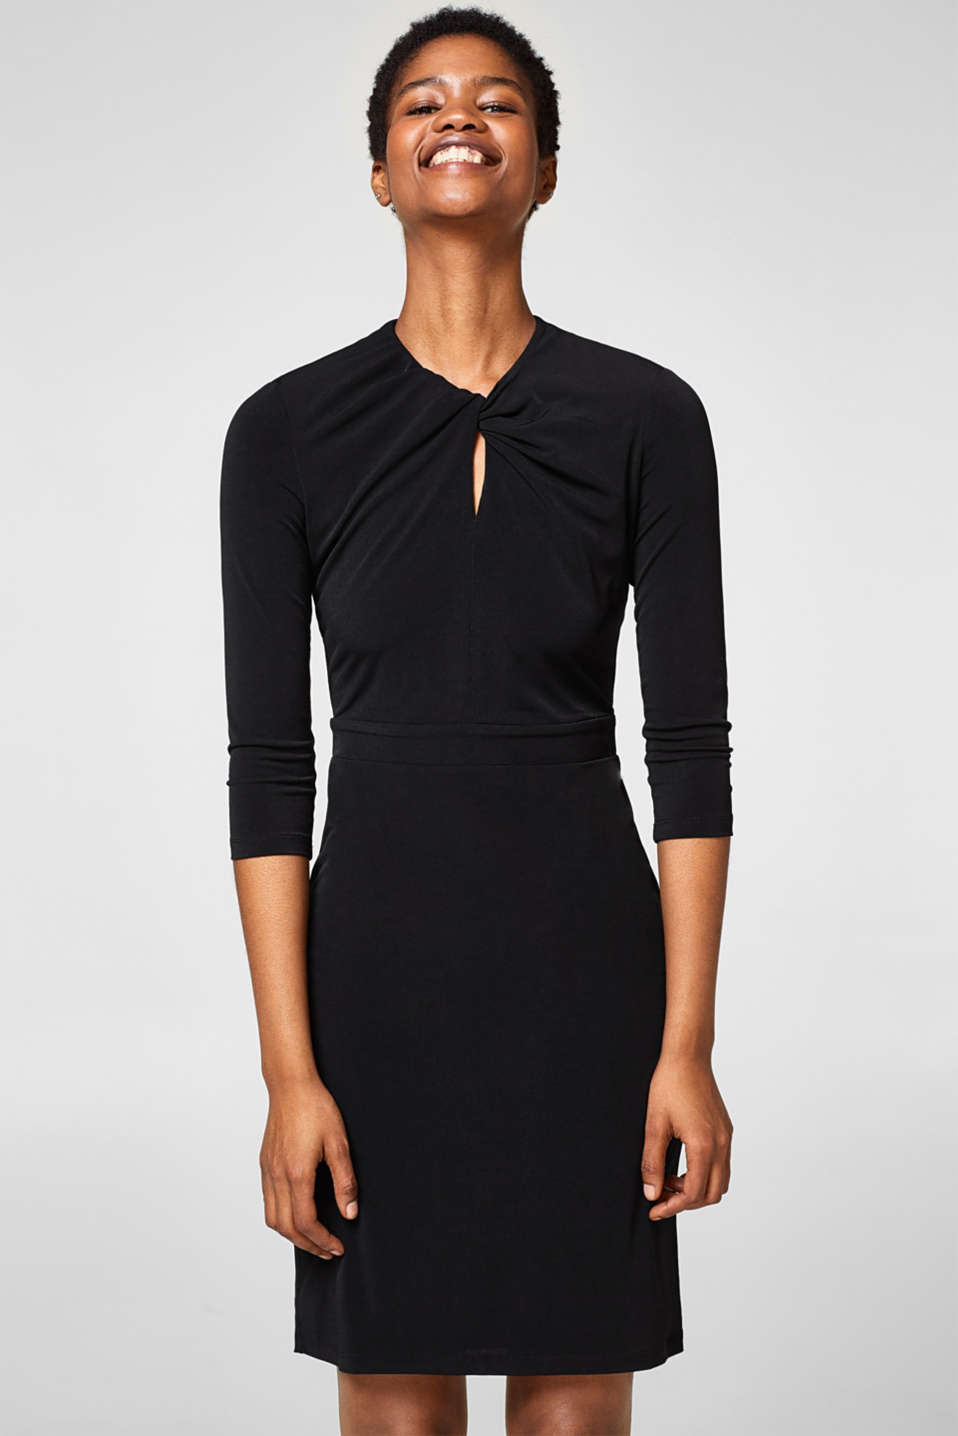 Esprit - Draped-effect stretch jersey dress